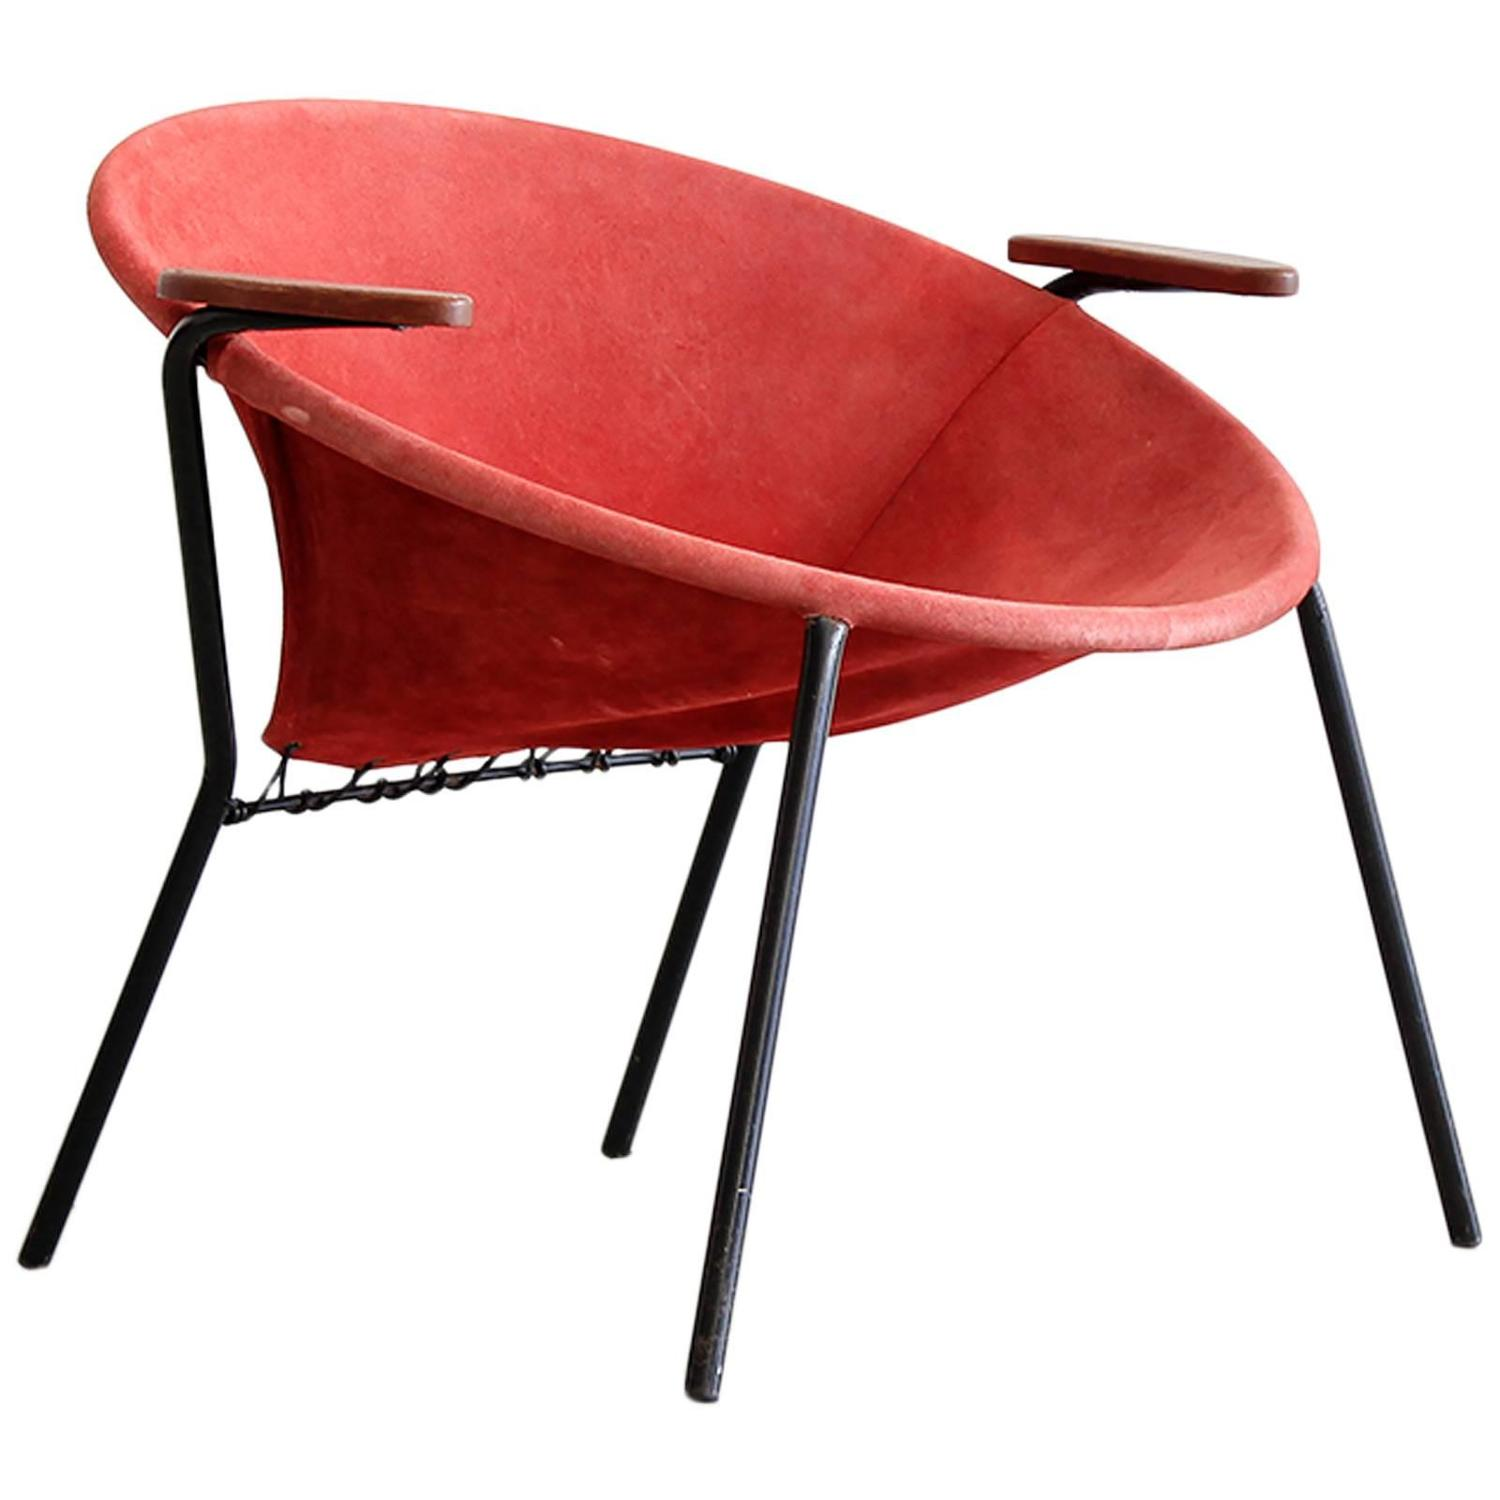 Balloon Chair For Sale Hans Olsen Quotballoon Quot Chair For Sale At 1stdibs